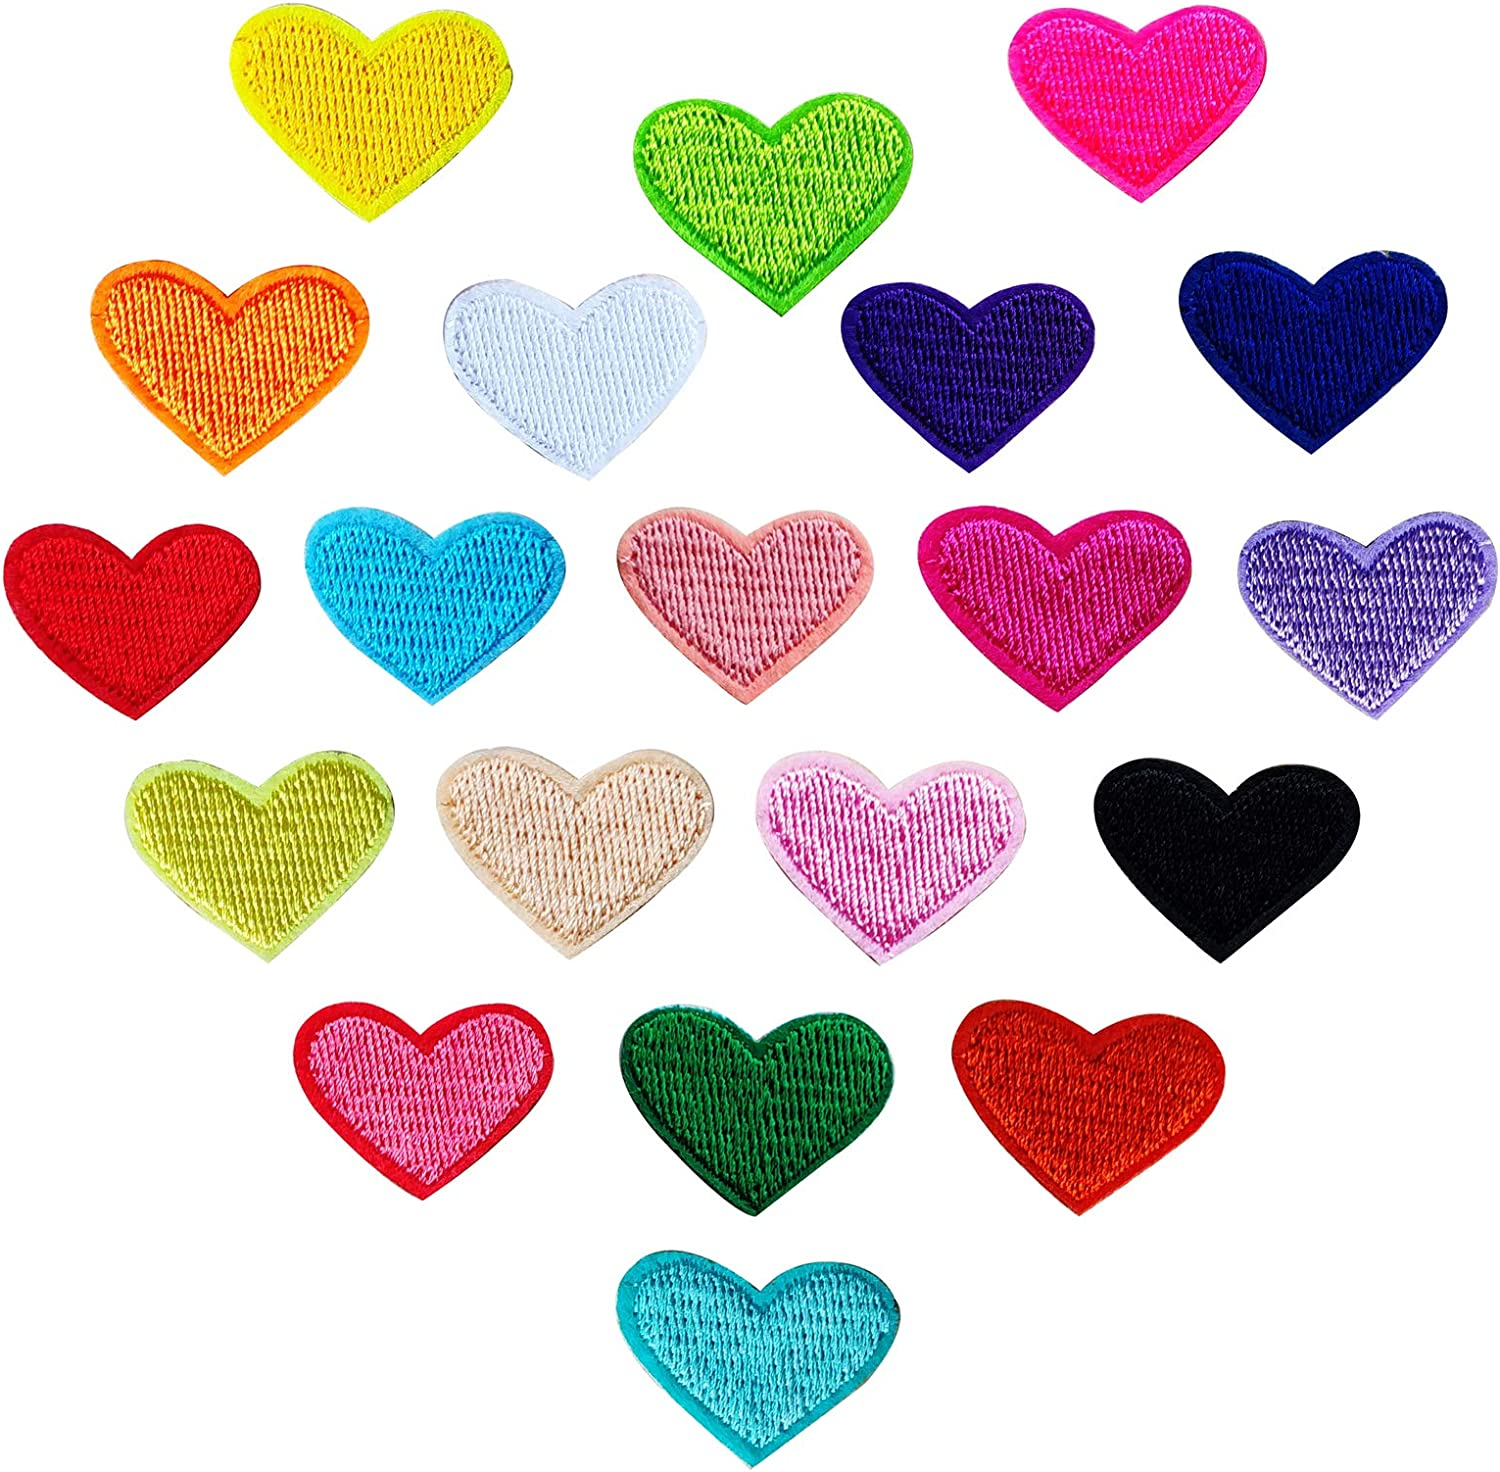 Heart Patches for Clothing Repair 20pcs Embroider In a popularity supreme Iron Sew on